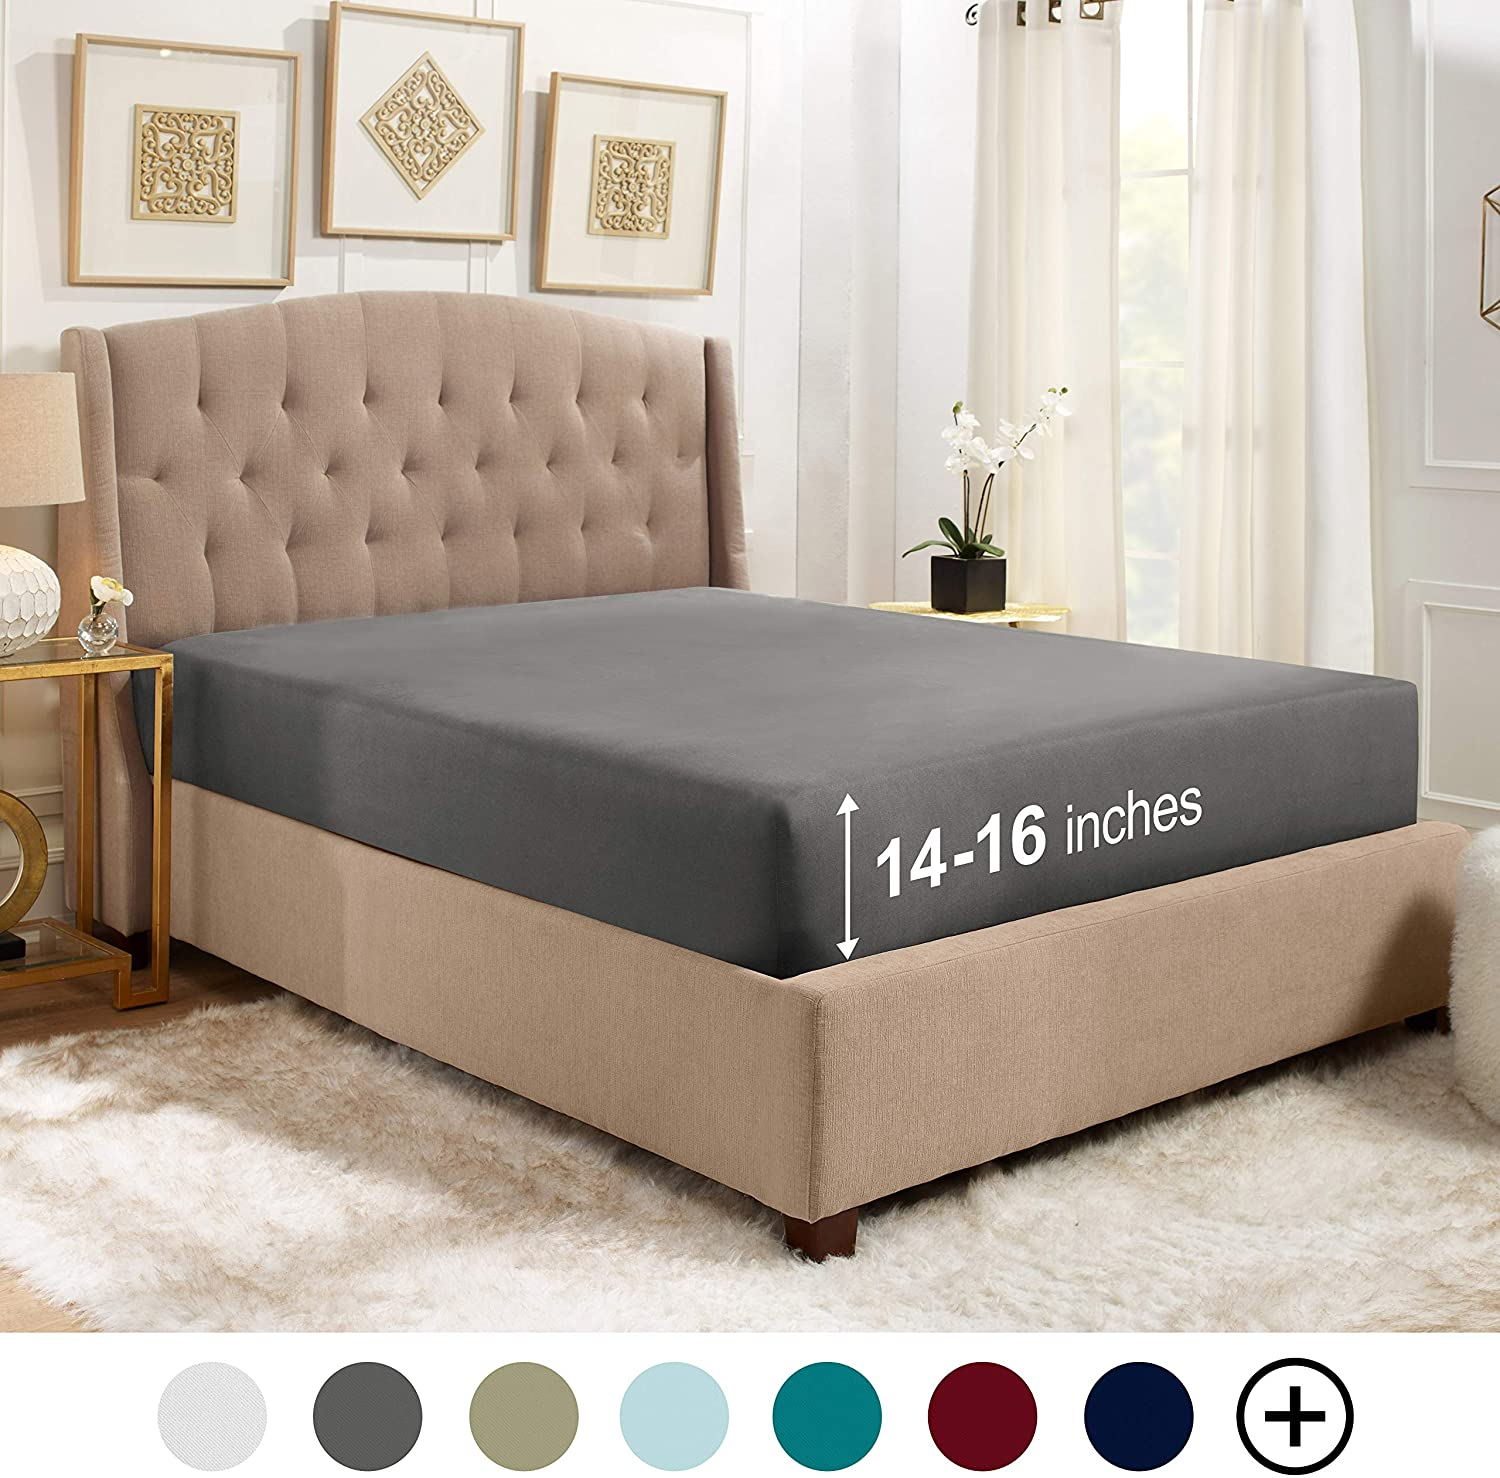 Bed Sheets Twin XL Fitted Sheet - 14